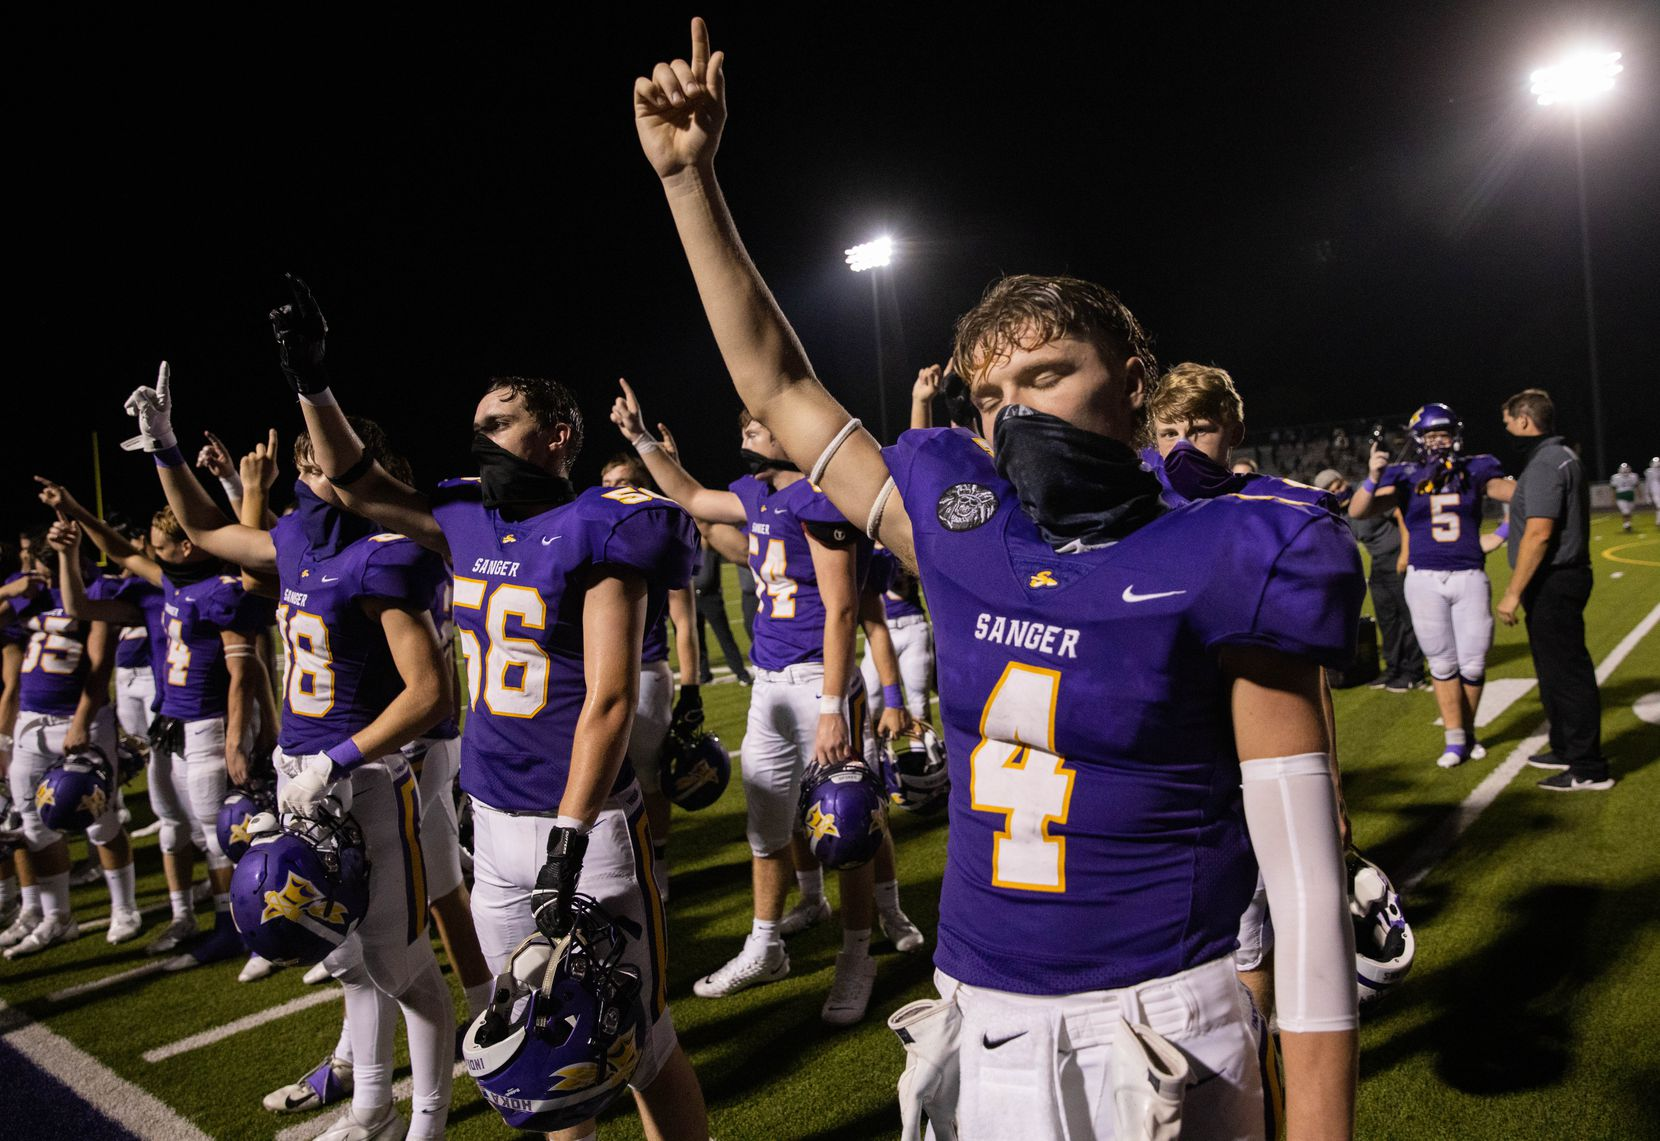 Sanger High School player Avery Walker (4) celebrates with his team after winning against Lake Worth High School on Sept. 4, 2020 in Sanger. Sanger won 49-35. (Juan Figueroa/ The Dallas Morning News)